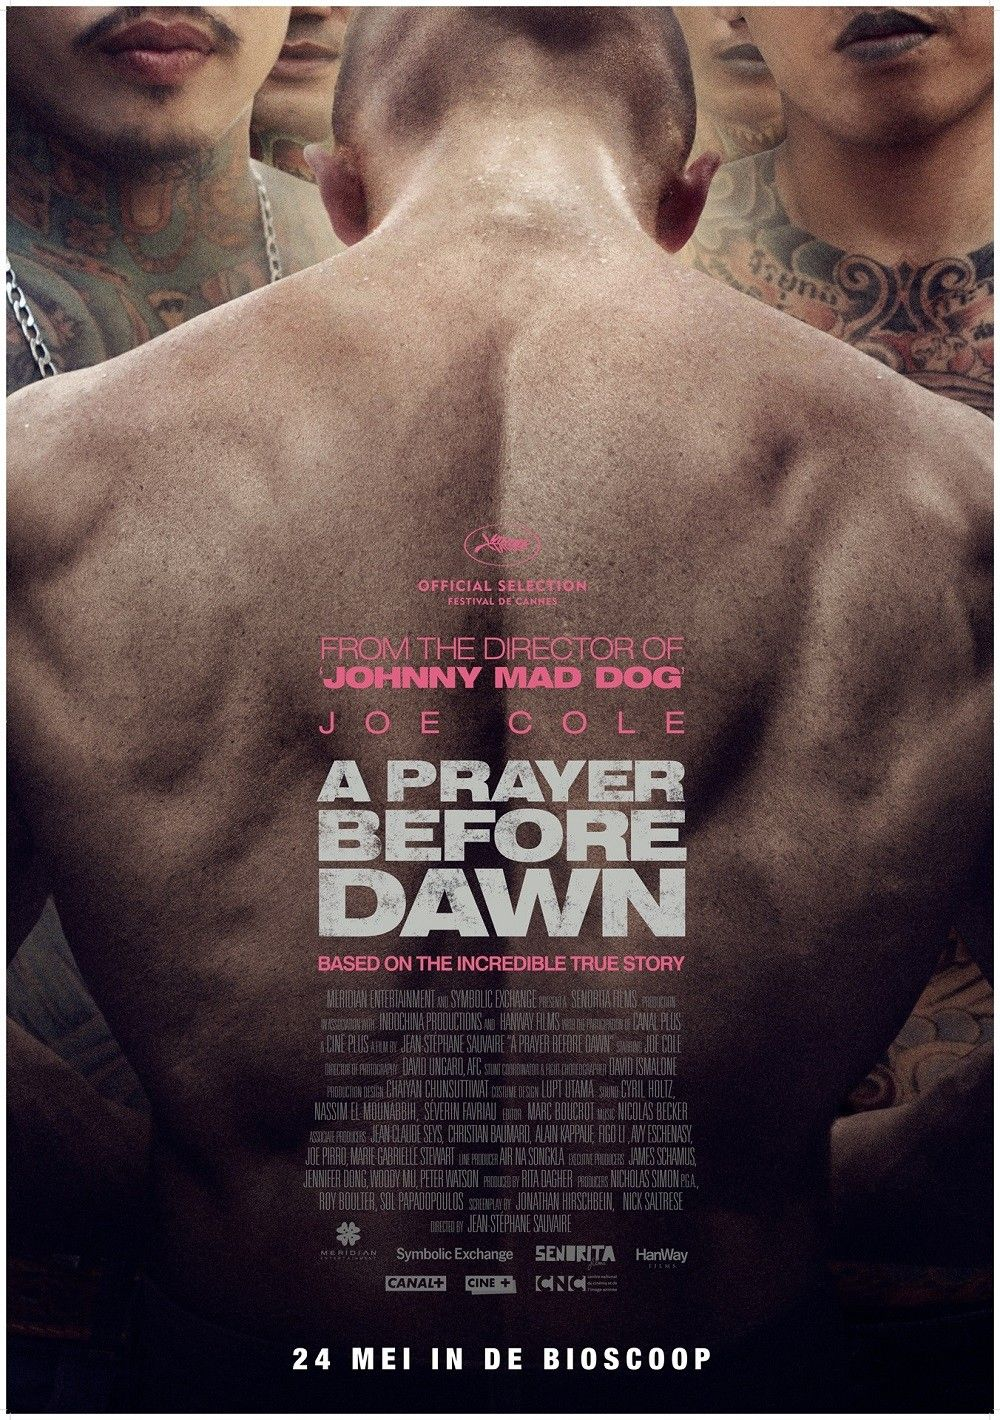 A Prayer Before Dawn 2017 The True Story Of An English Boxer